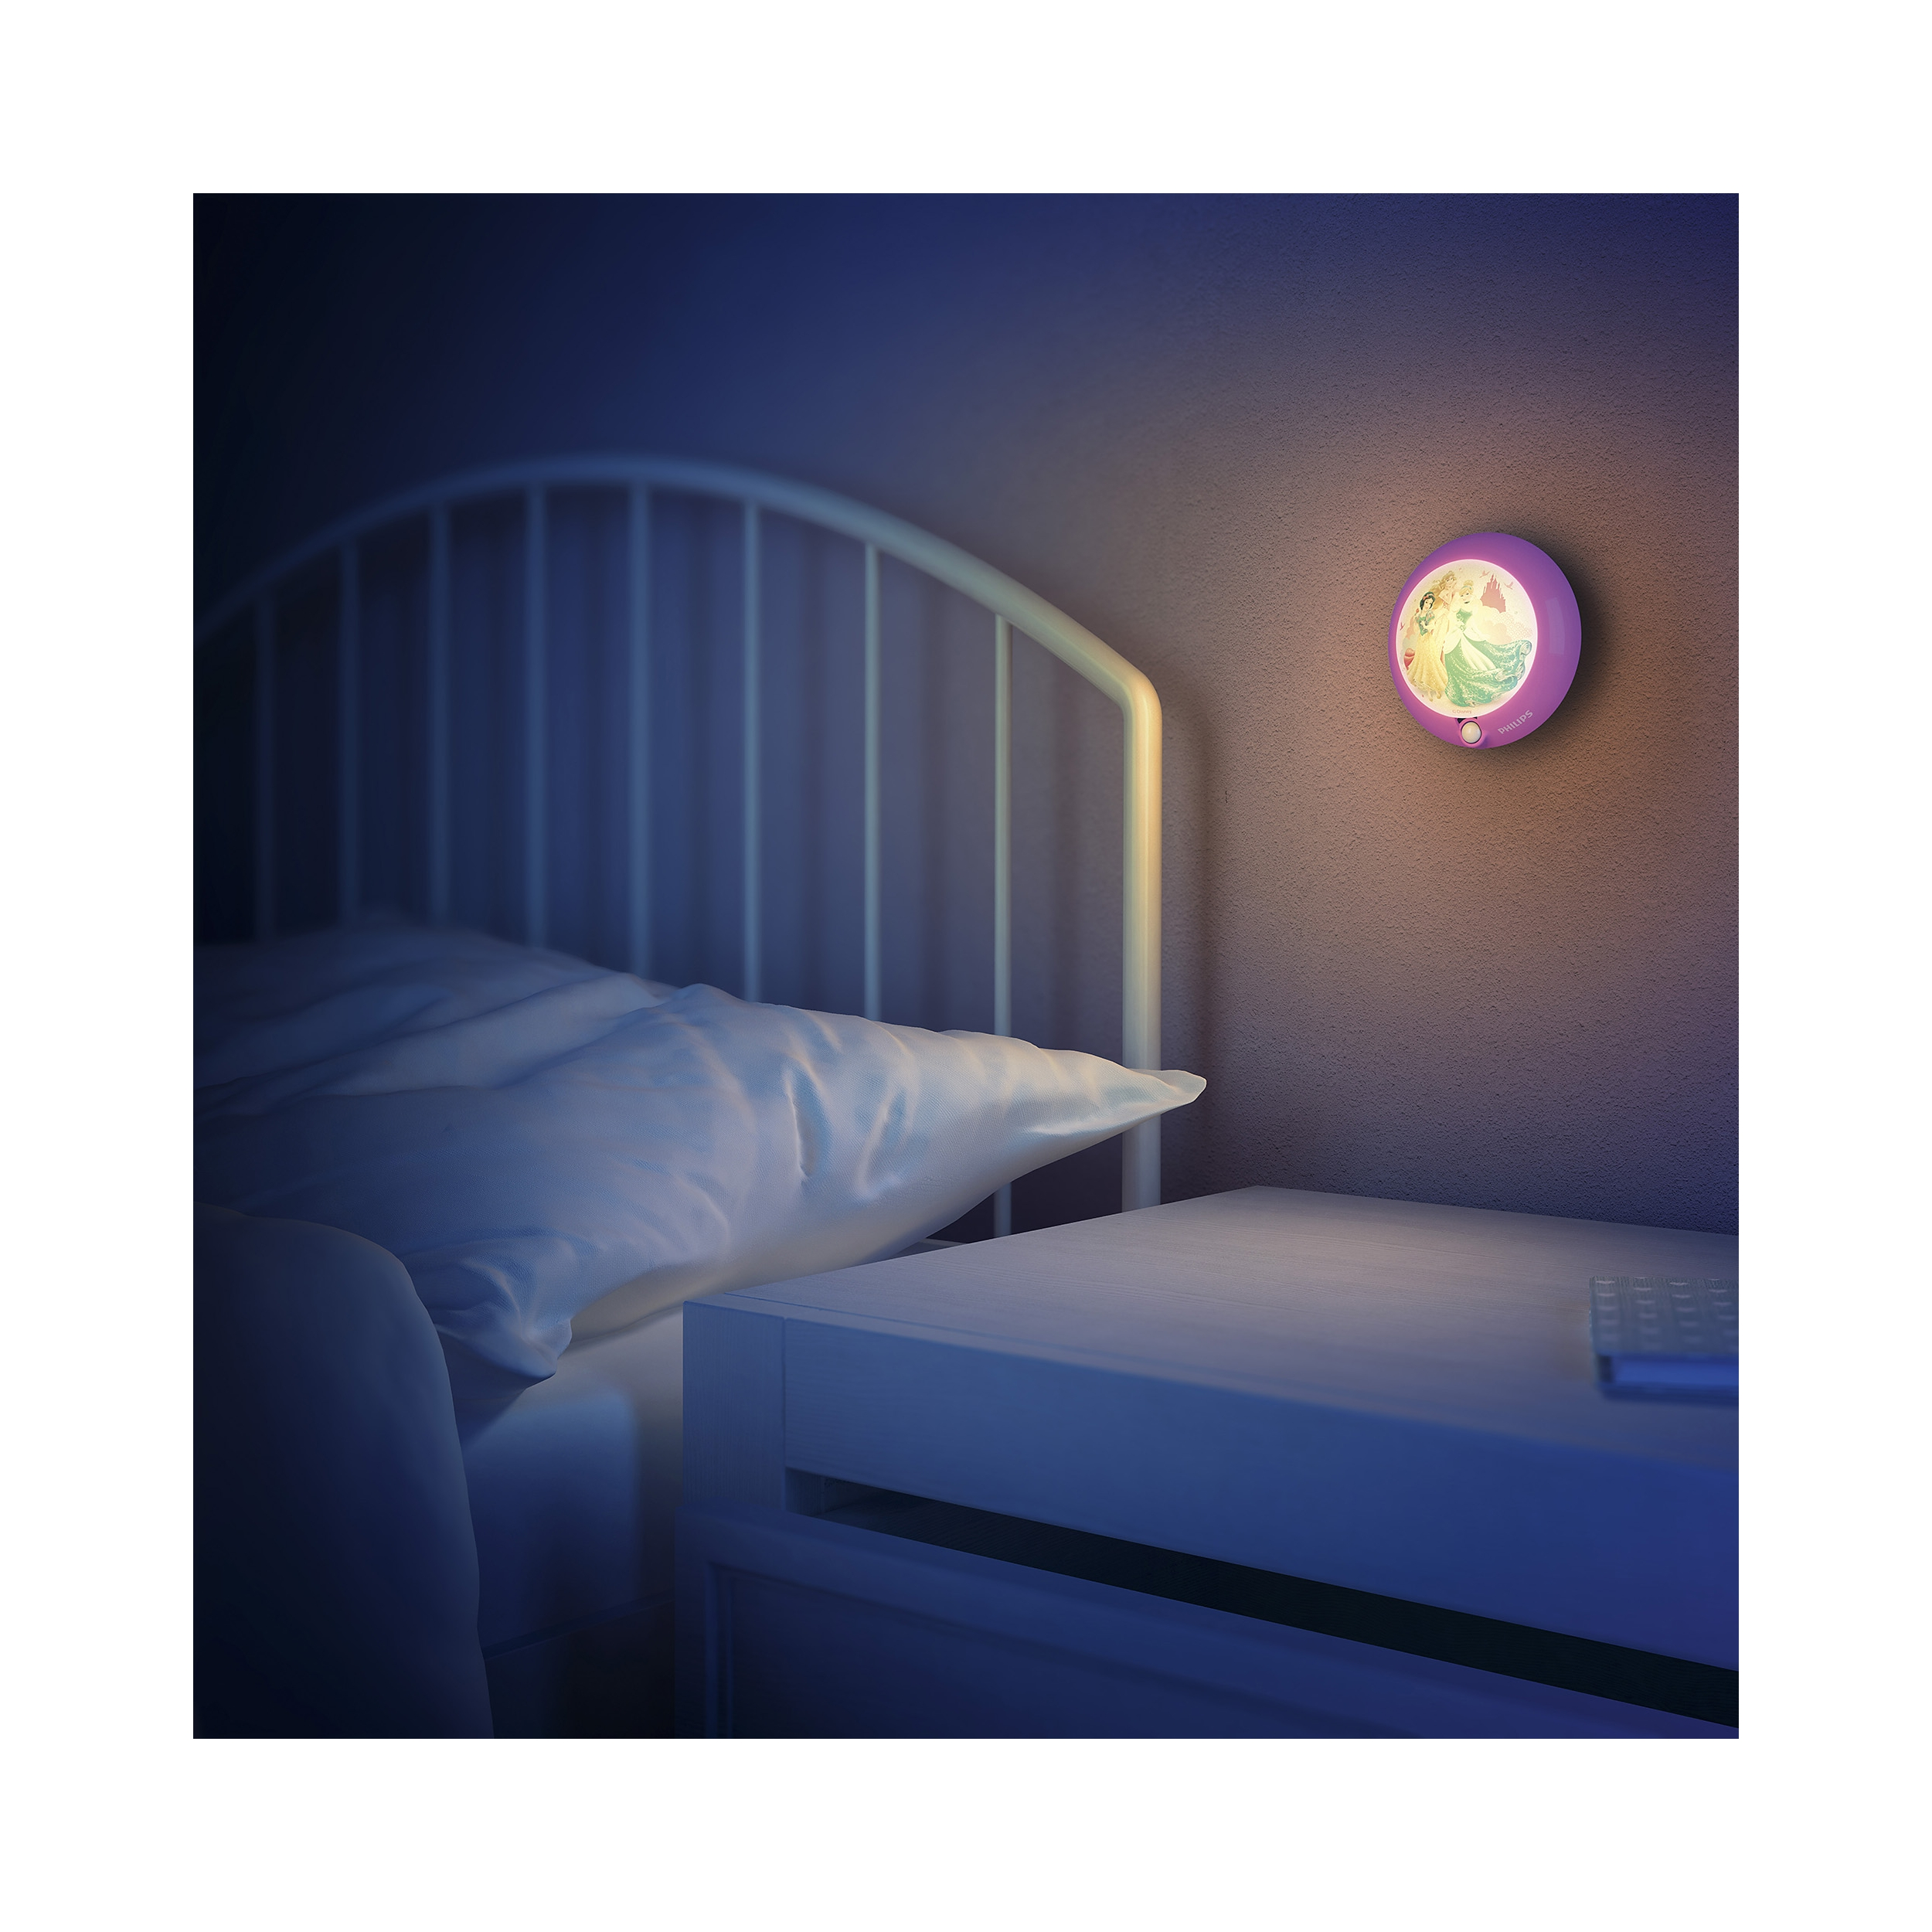 philips led lampe kinderzimmer disney nachtlicht princess licht 717652816 ebay. Black Bedroom Furniture Sets. Home Design Ideas